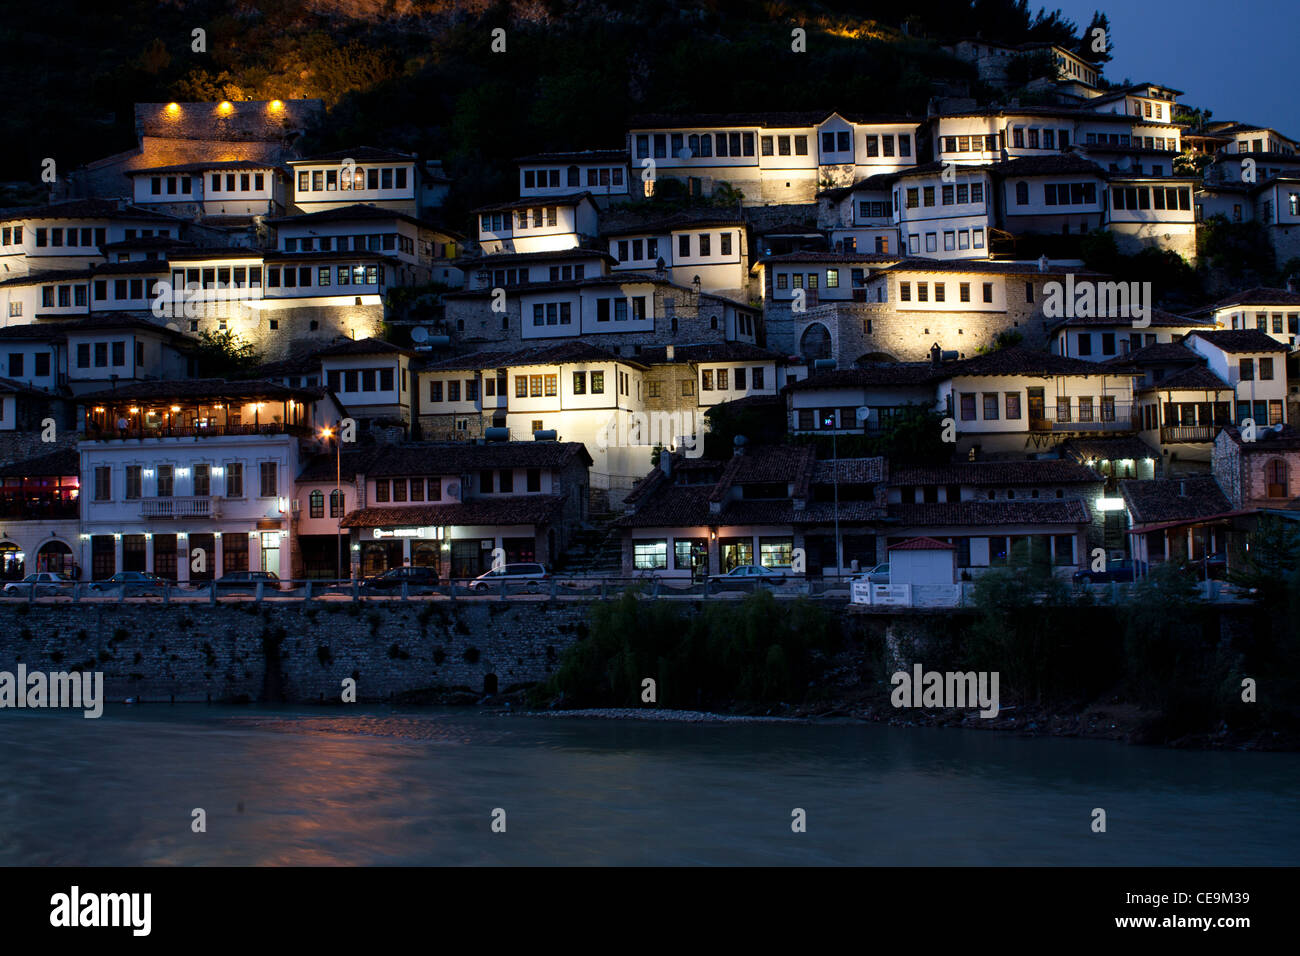 The city of Berat, Albania by night - Stock Image